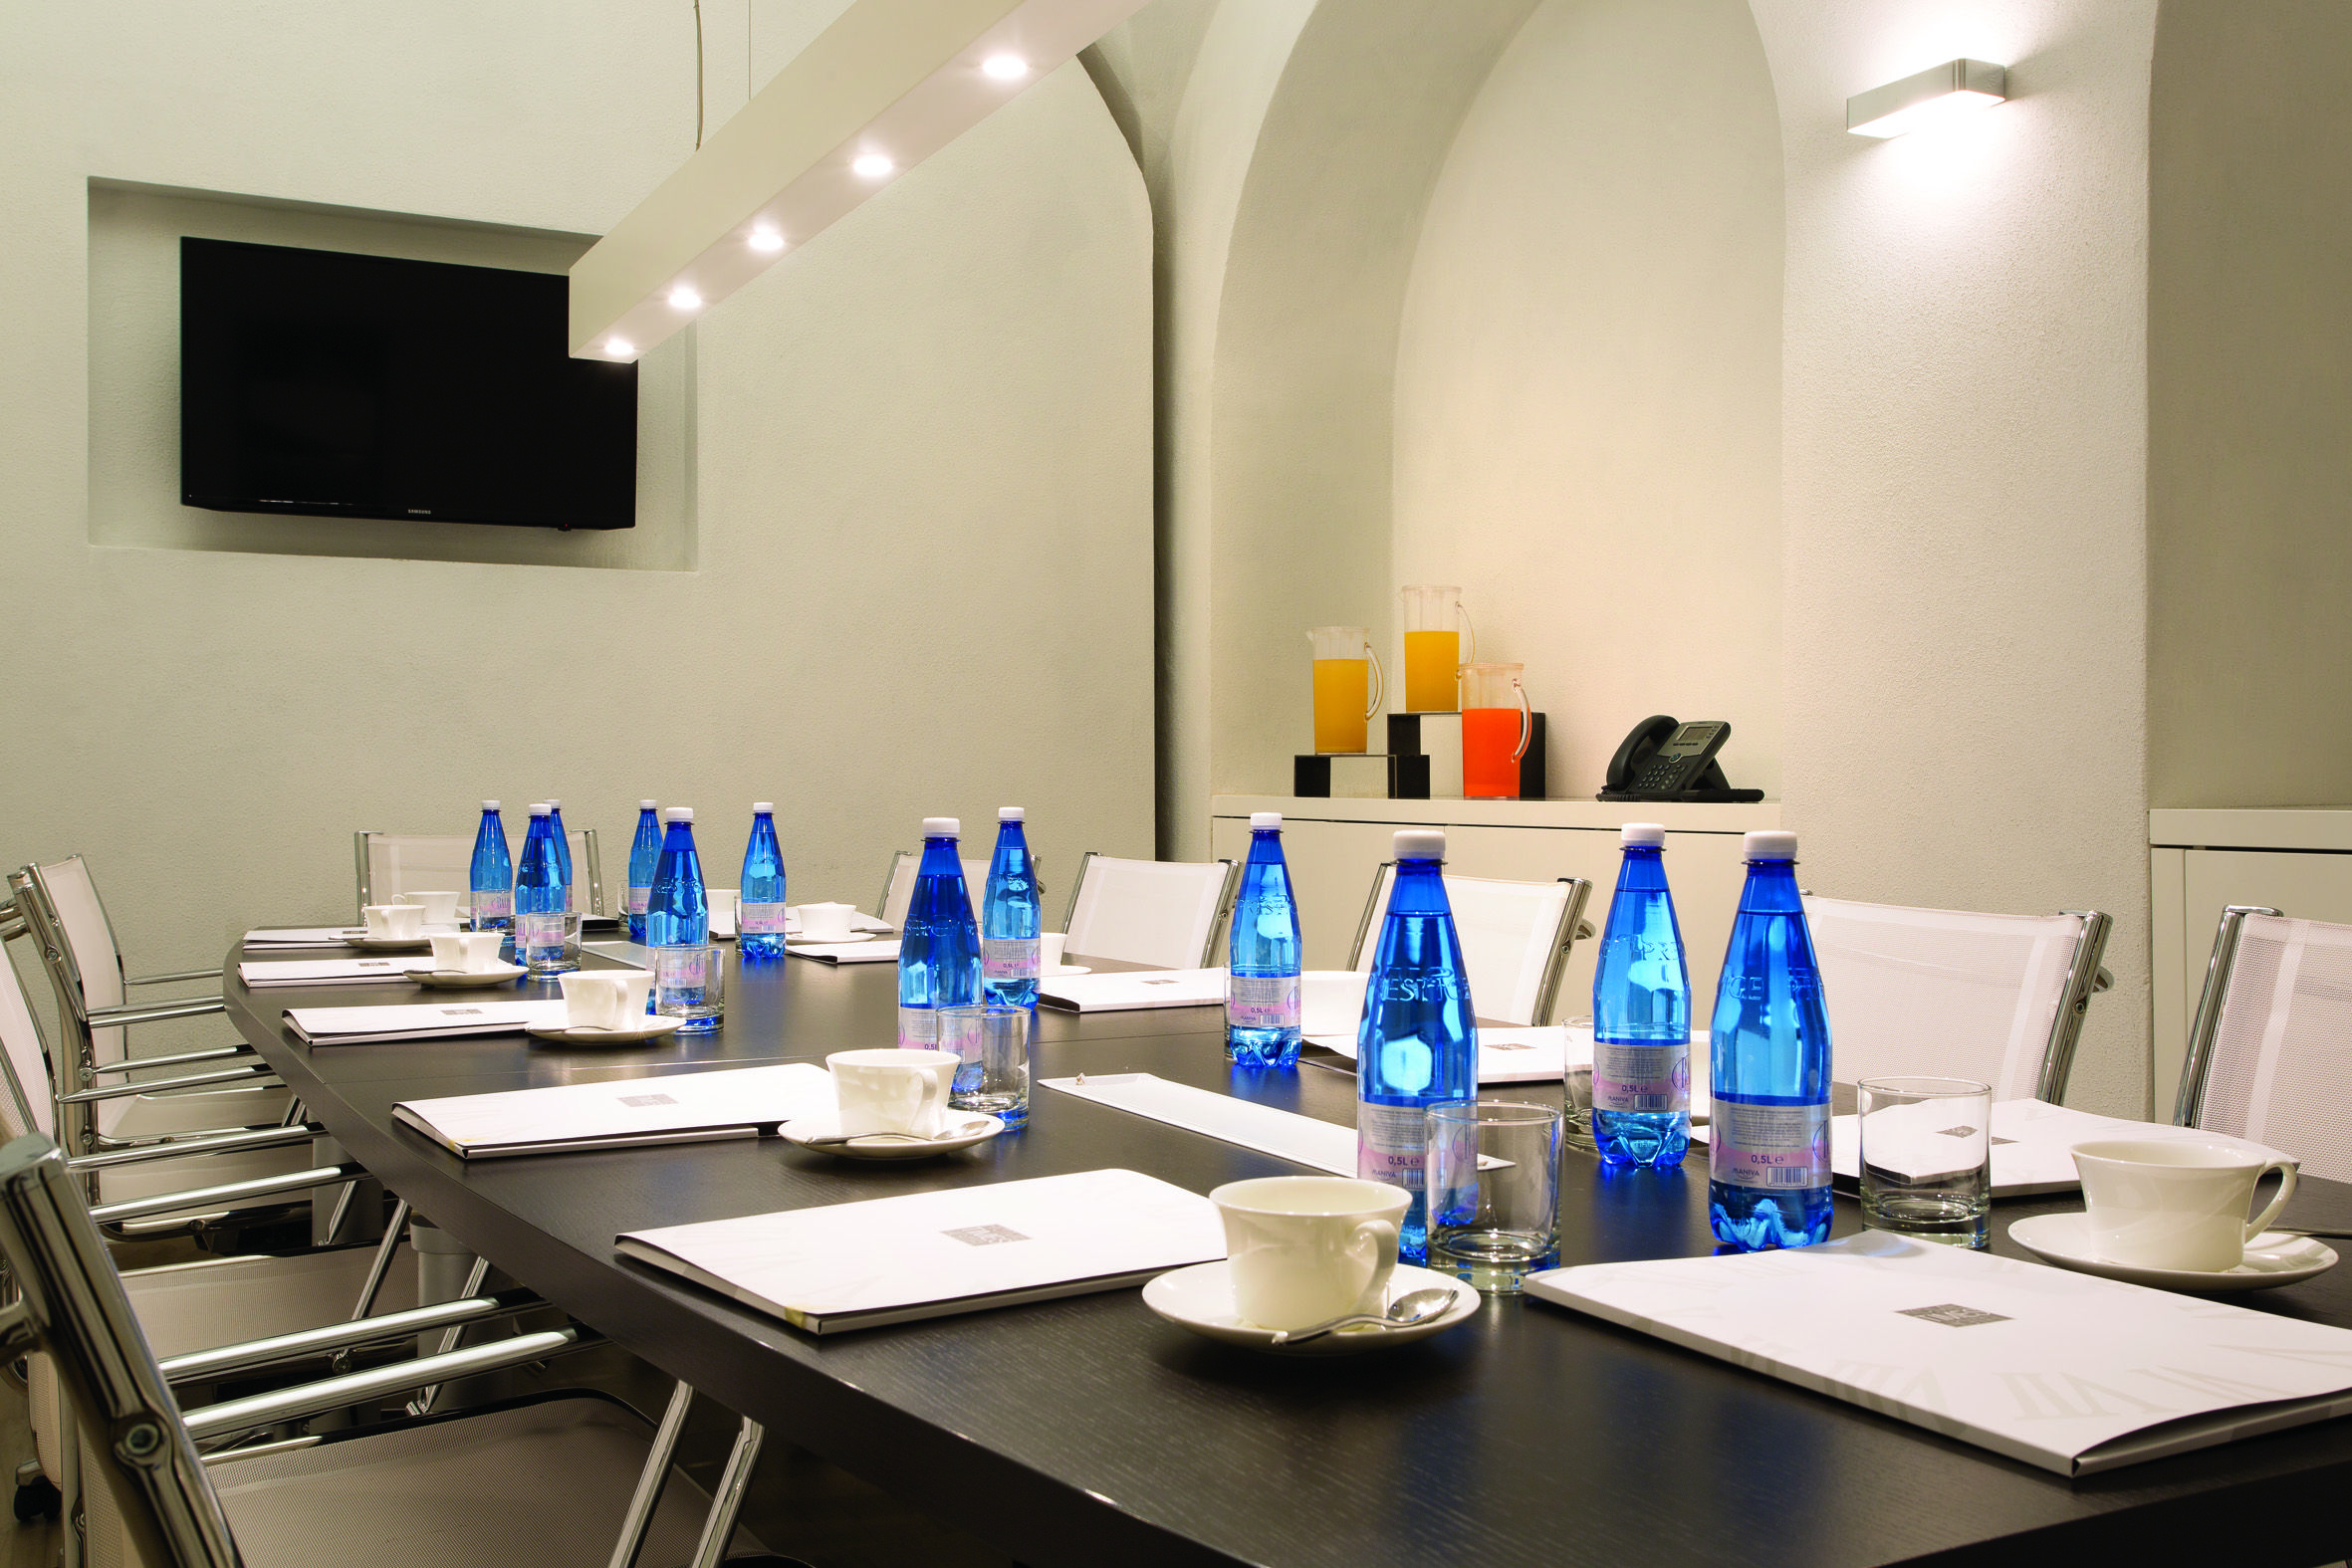 Meeting Room Hotel Function Spaces Pinterest Meeting Rooms  # Muebles Bodega Lm